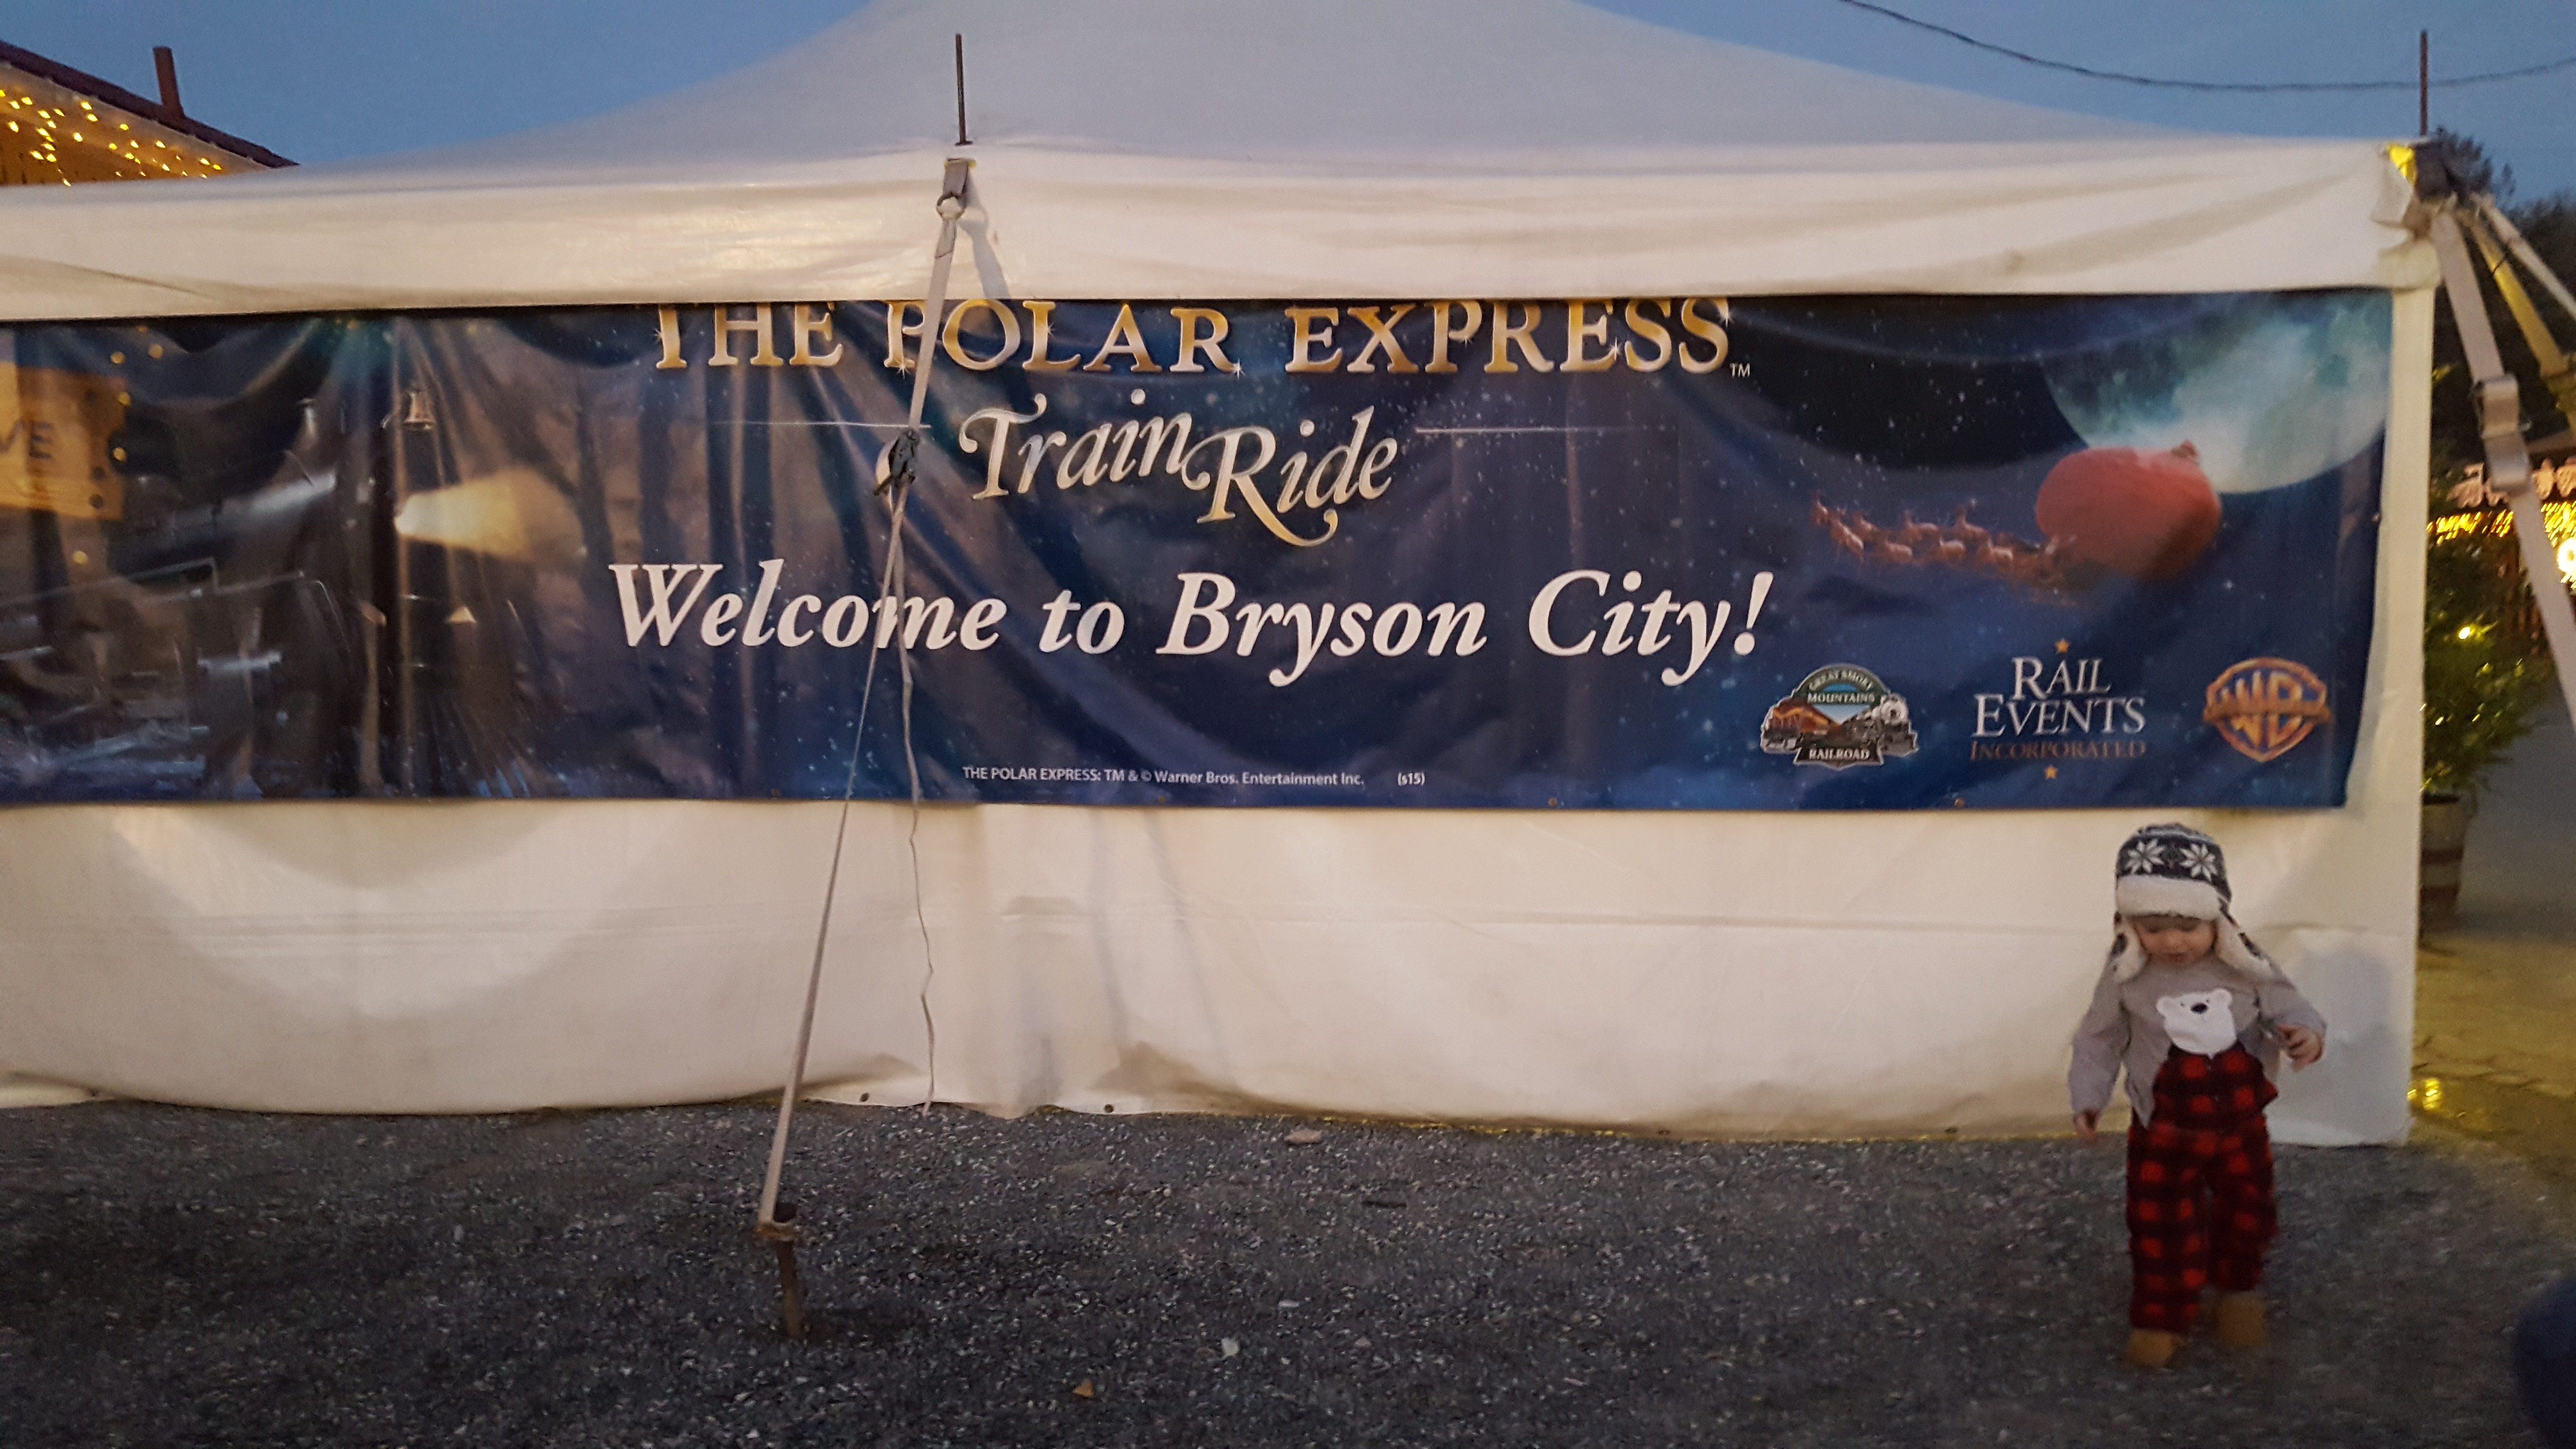 polar express-bryson city-train ride-christmas traditions